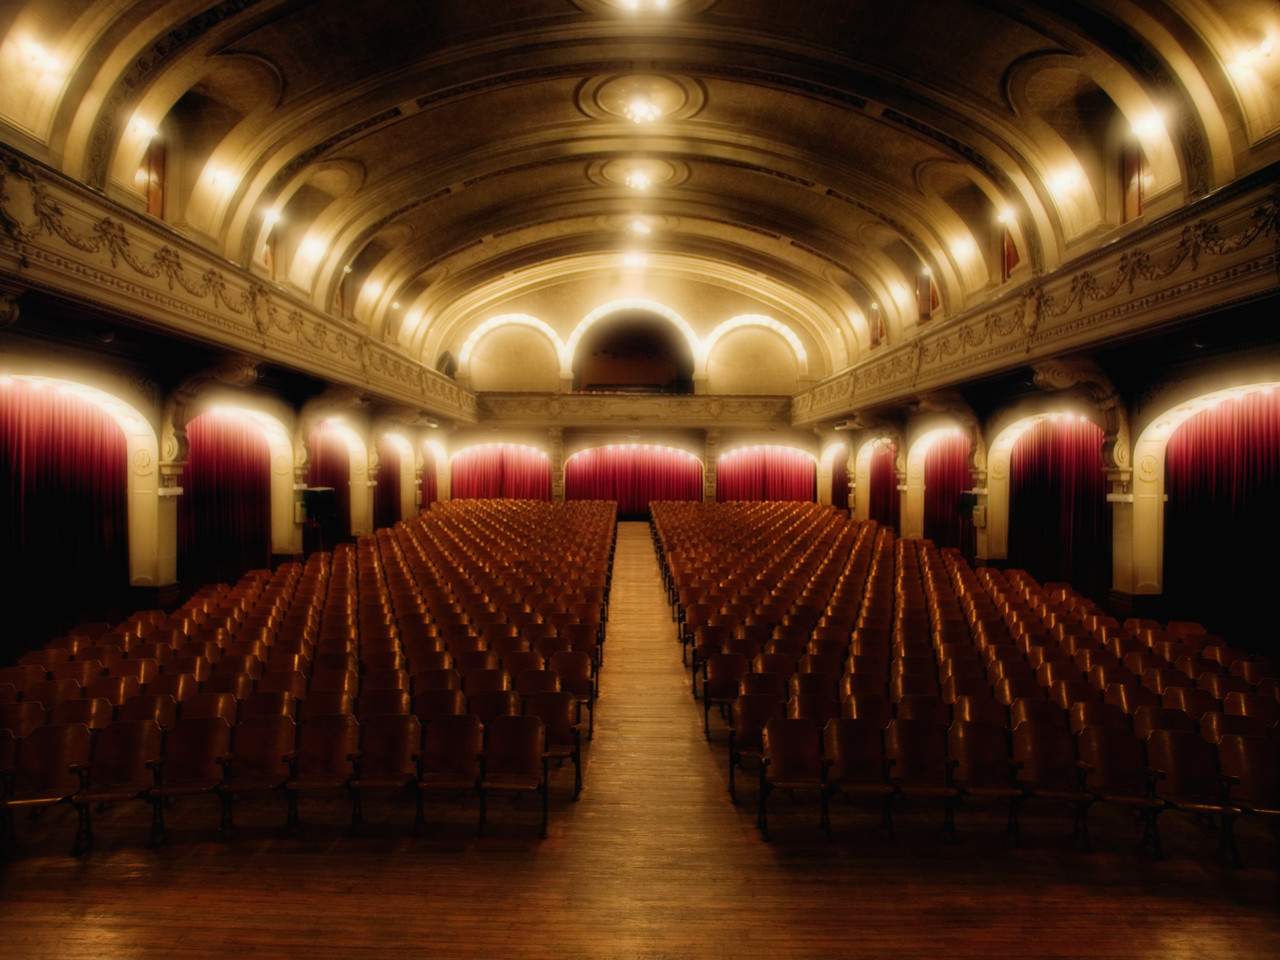 Stagebill S Blog Time To Crack Down On Audience